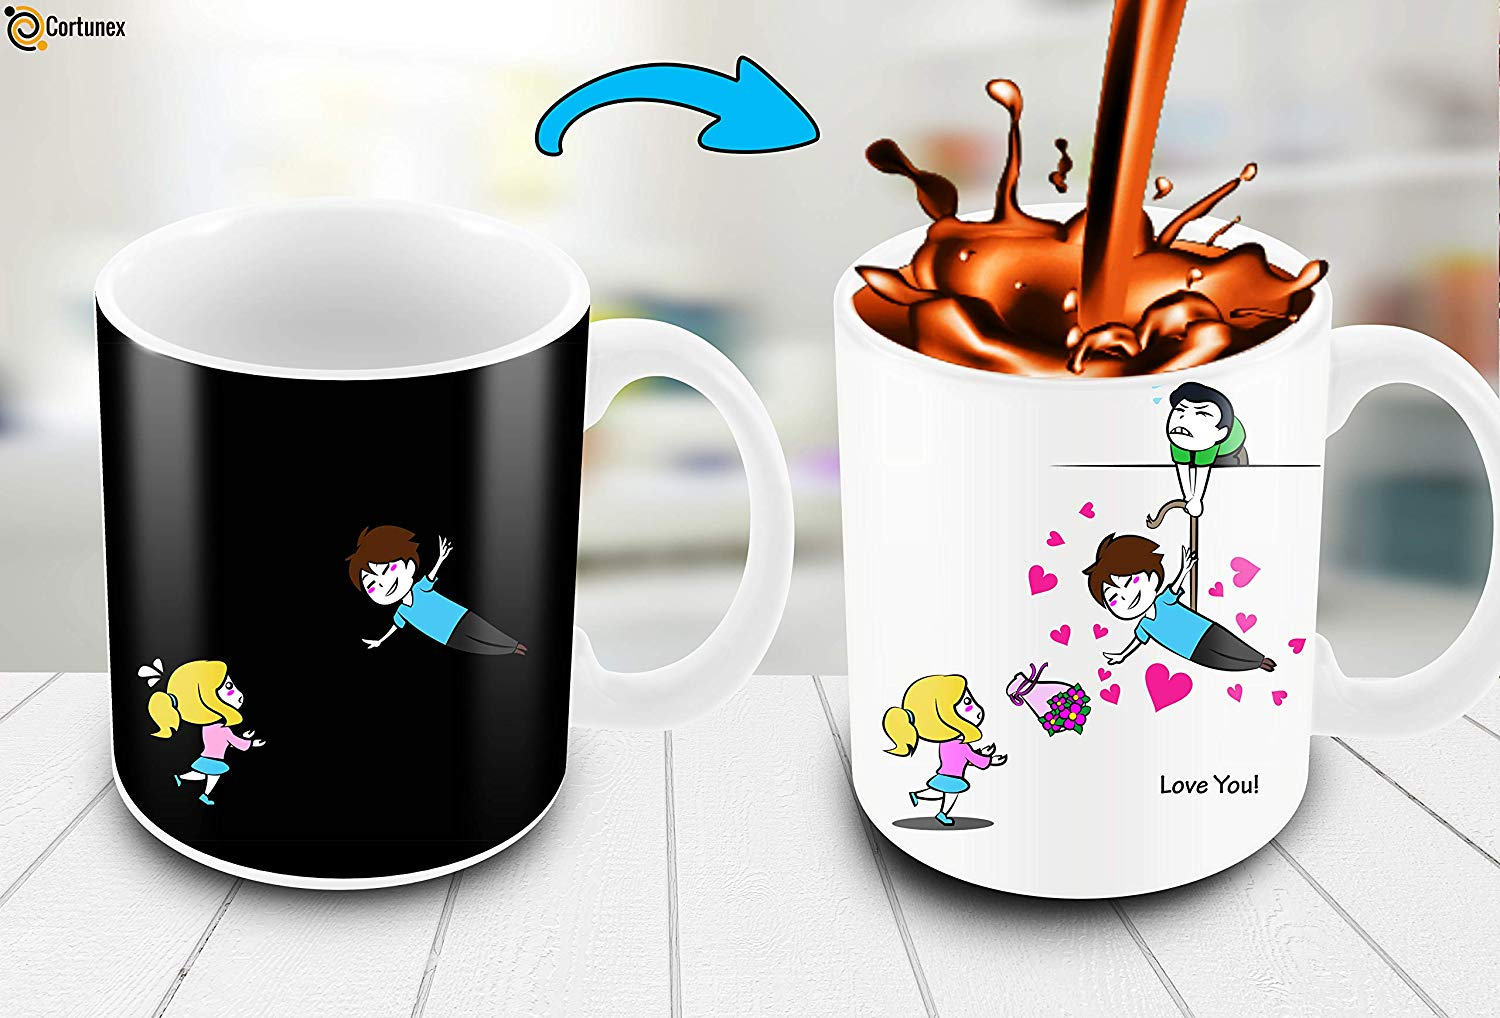 Heat Sensitive Color Changing Coffee Mug Funny Coffee Cup Flying Lovely Cartoon Couple Design Funny Gift Idea B07D21S68R 3